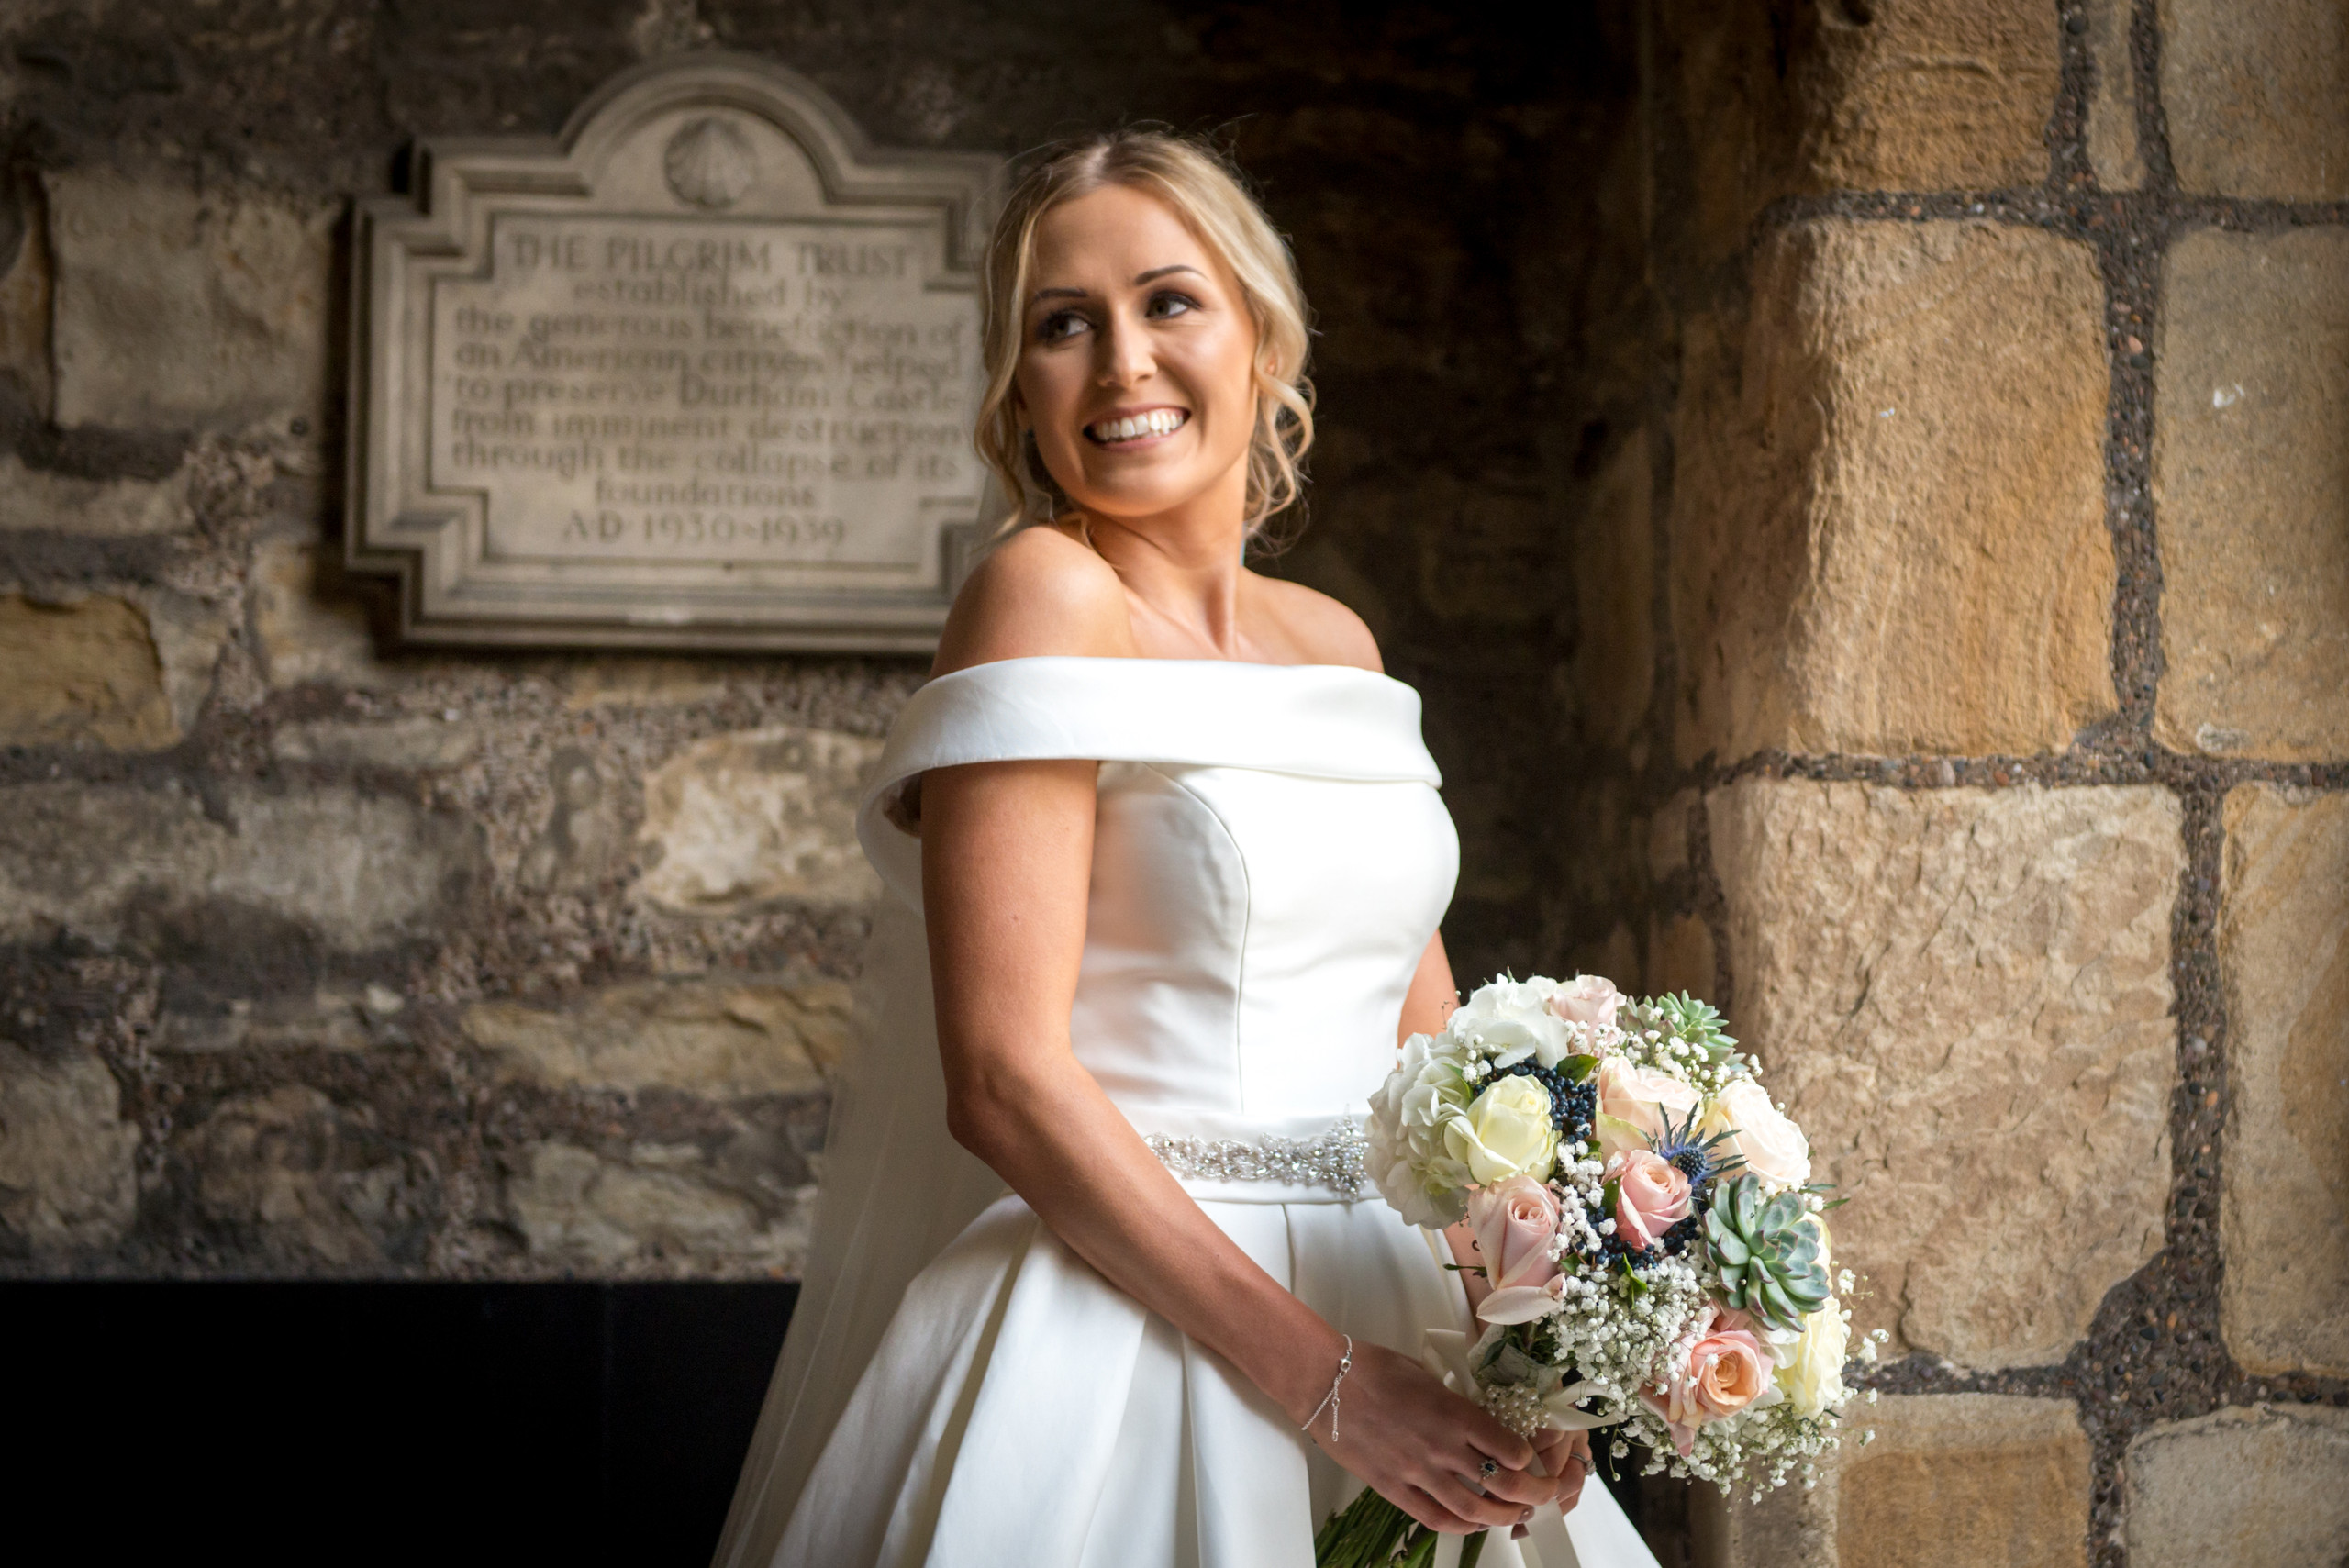 Relaxed wedding photography of bride holding bouquet smiling in entrance archway between Bishops Hall and Inner Bailey of historic venue Durham Castle in Durham City